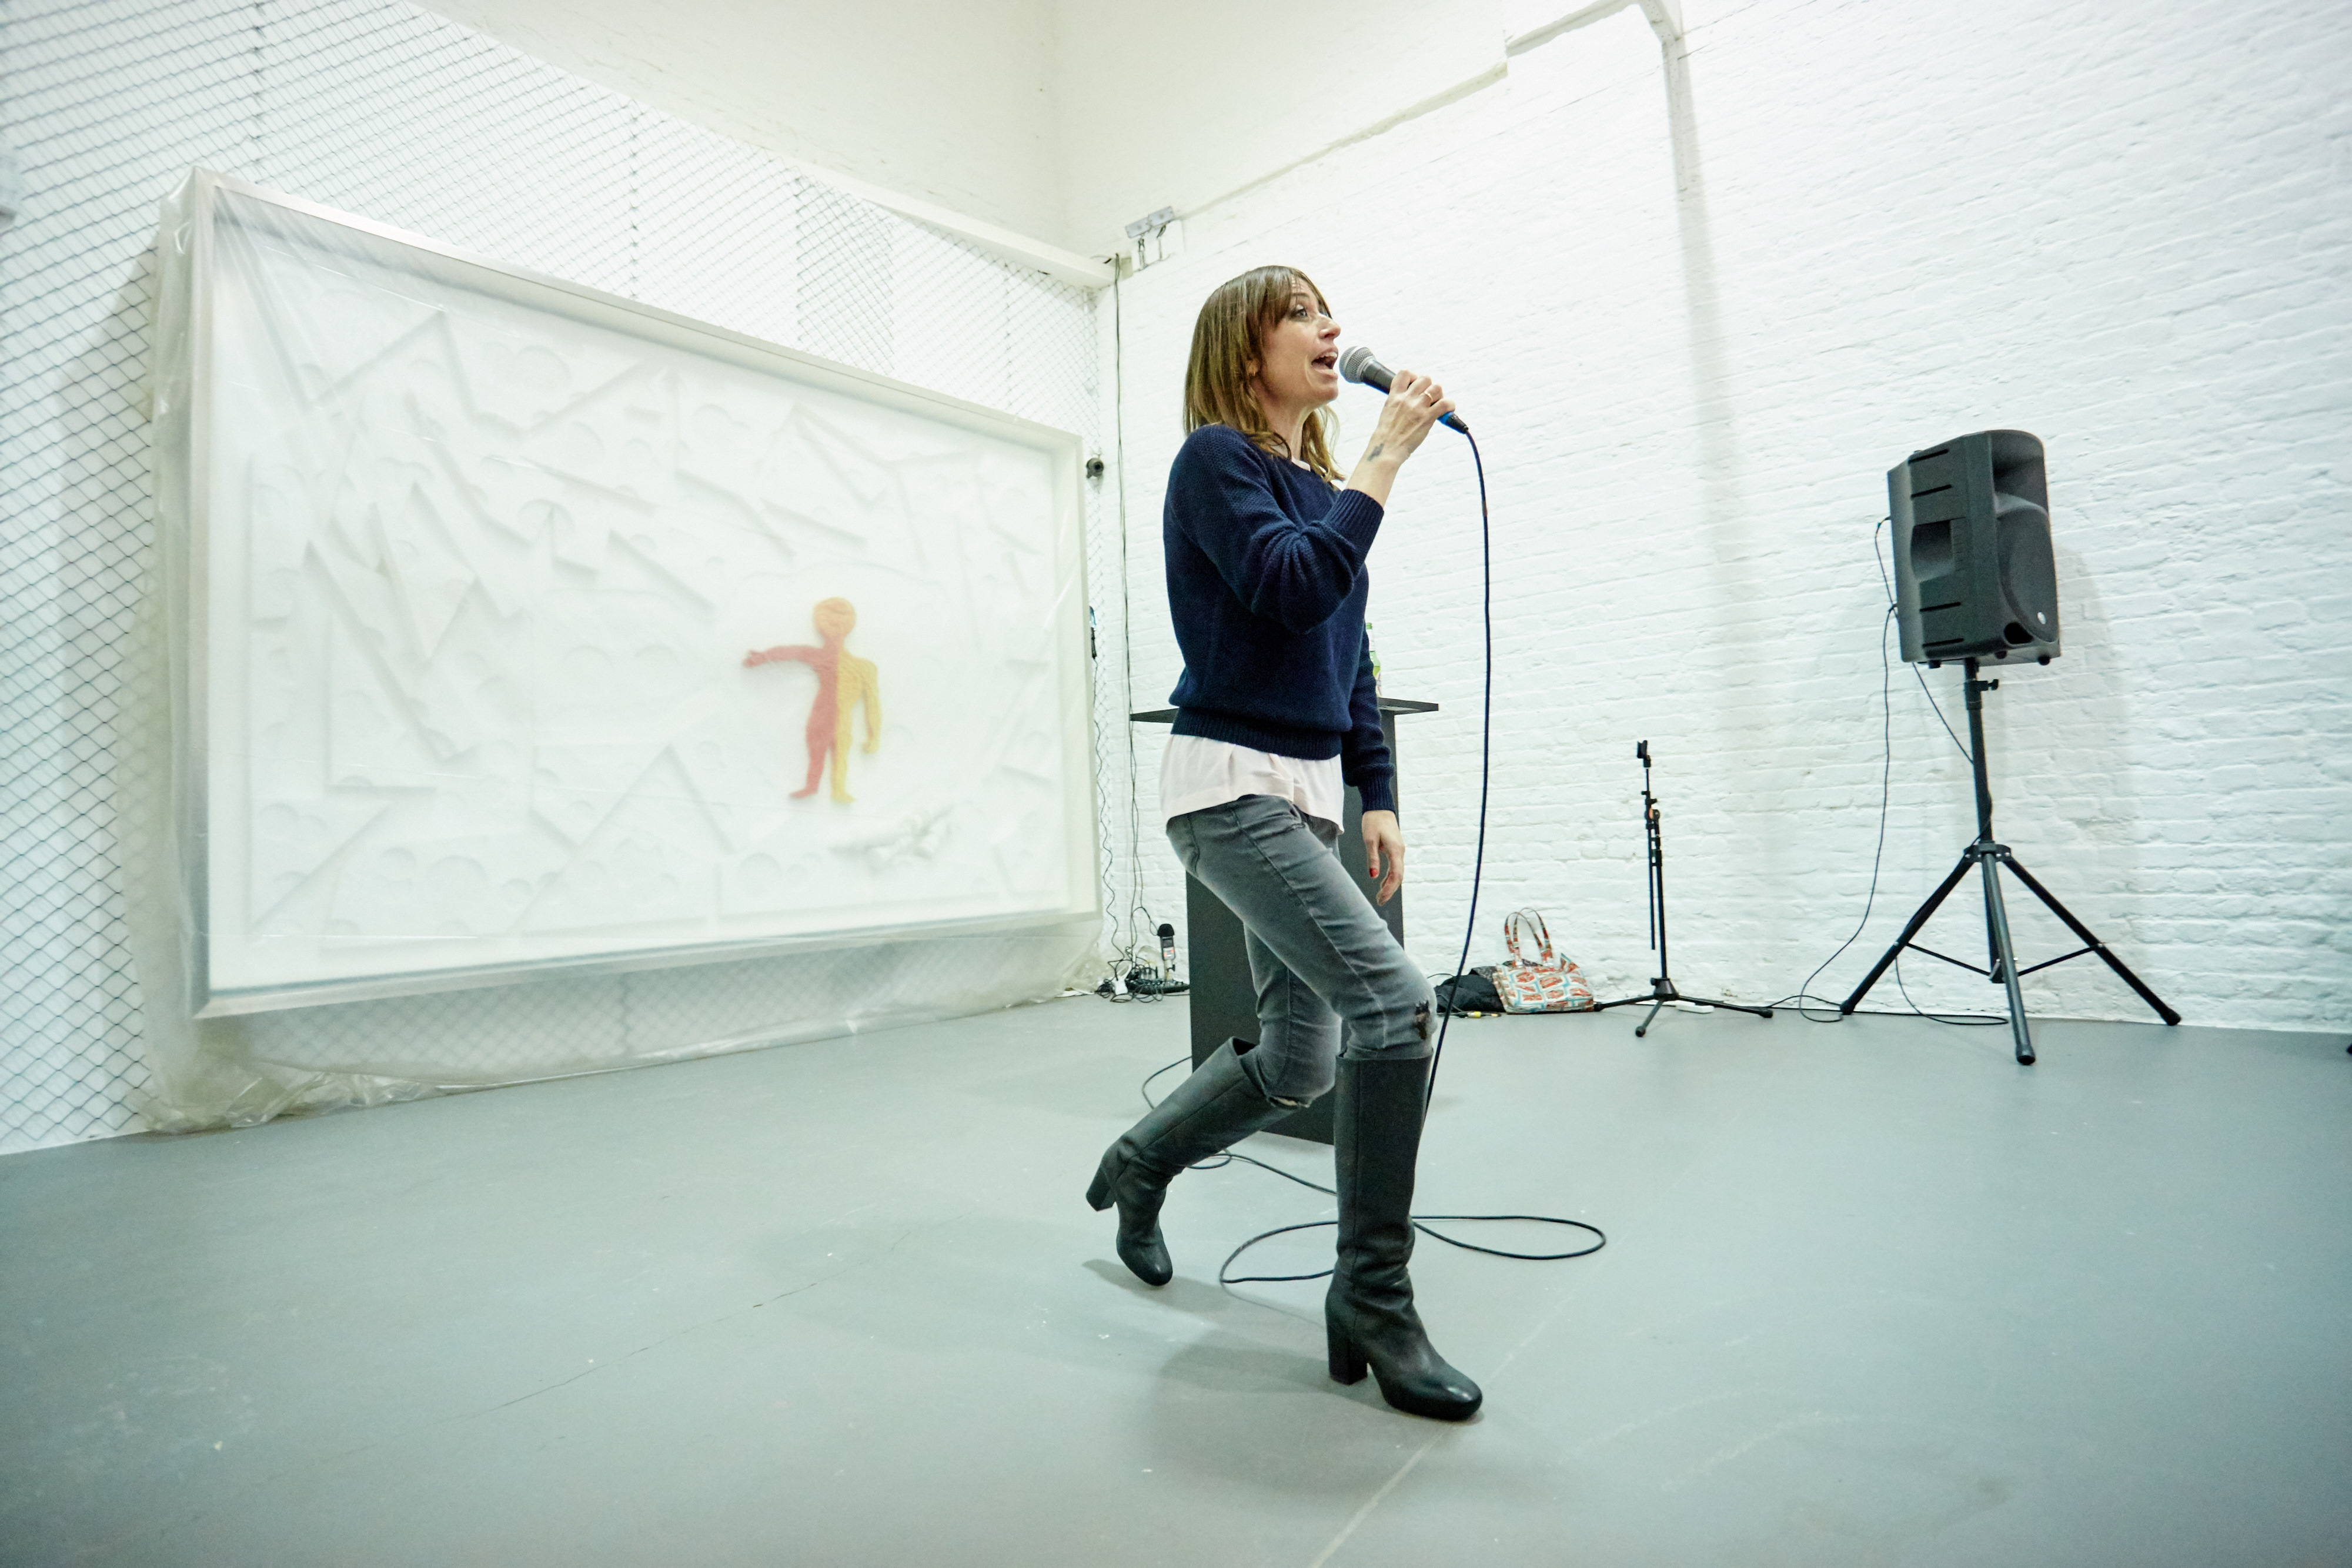 Sue Tompkins, 'Kim do the V' (performance), 2015, David Roberts Art Foundation, London, 2015. Courtesy of The Artist and The Modern Institute/Toby Webster Ltd, Glasgow